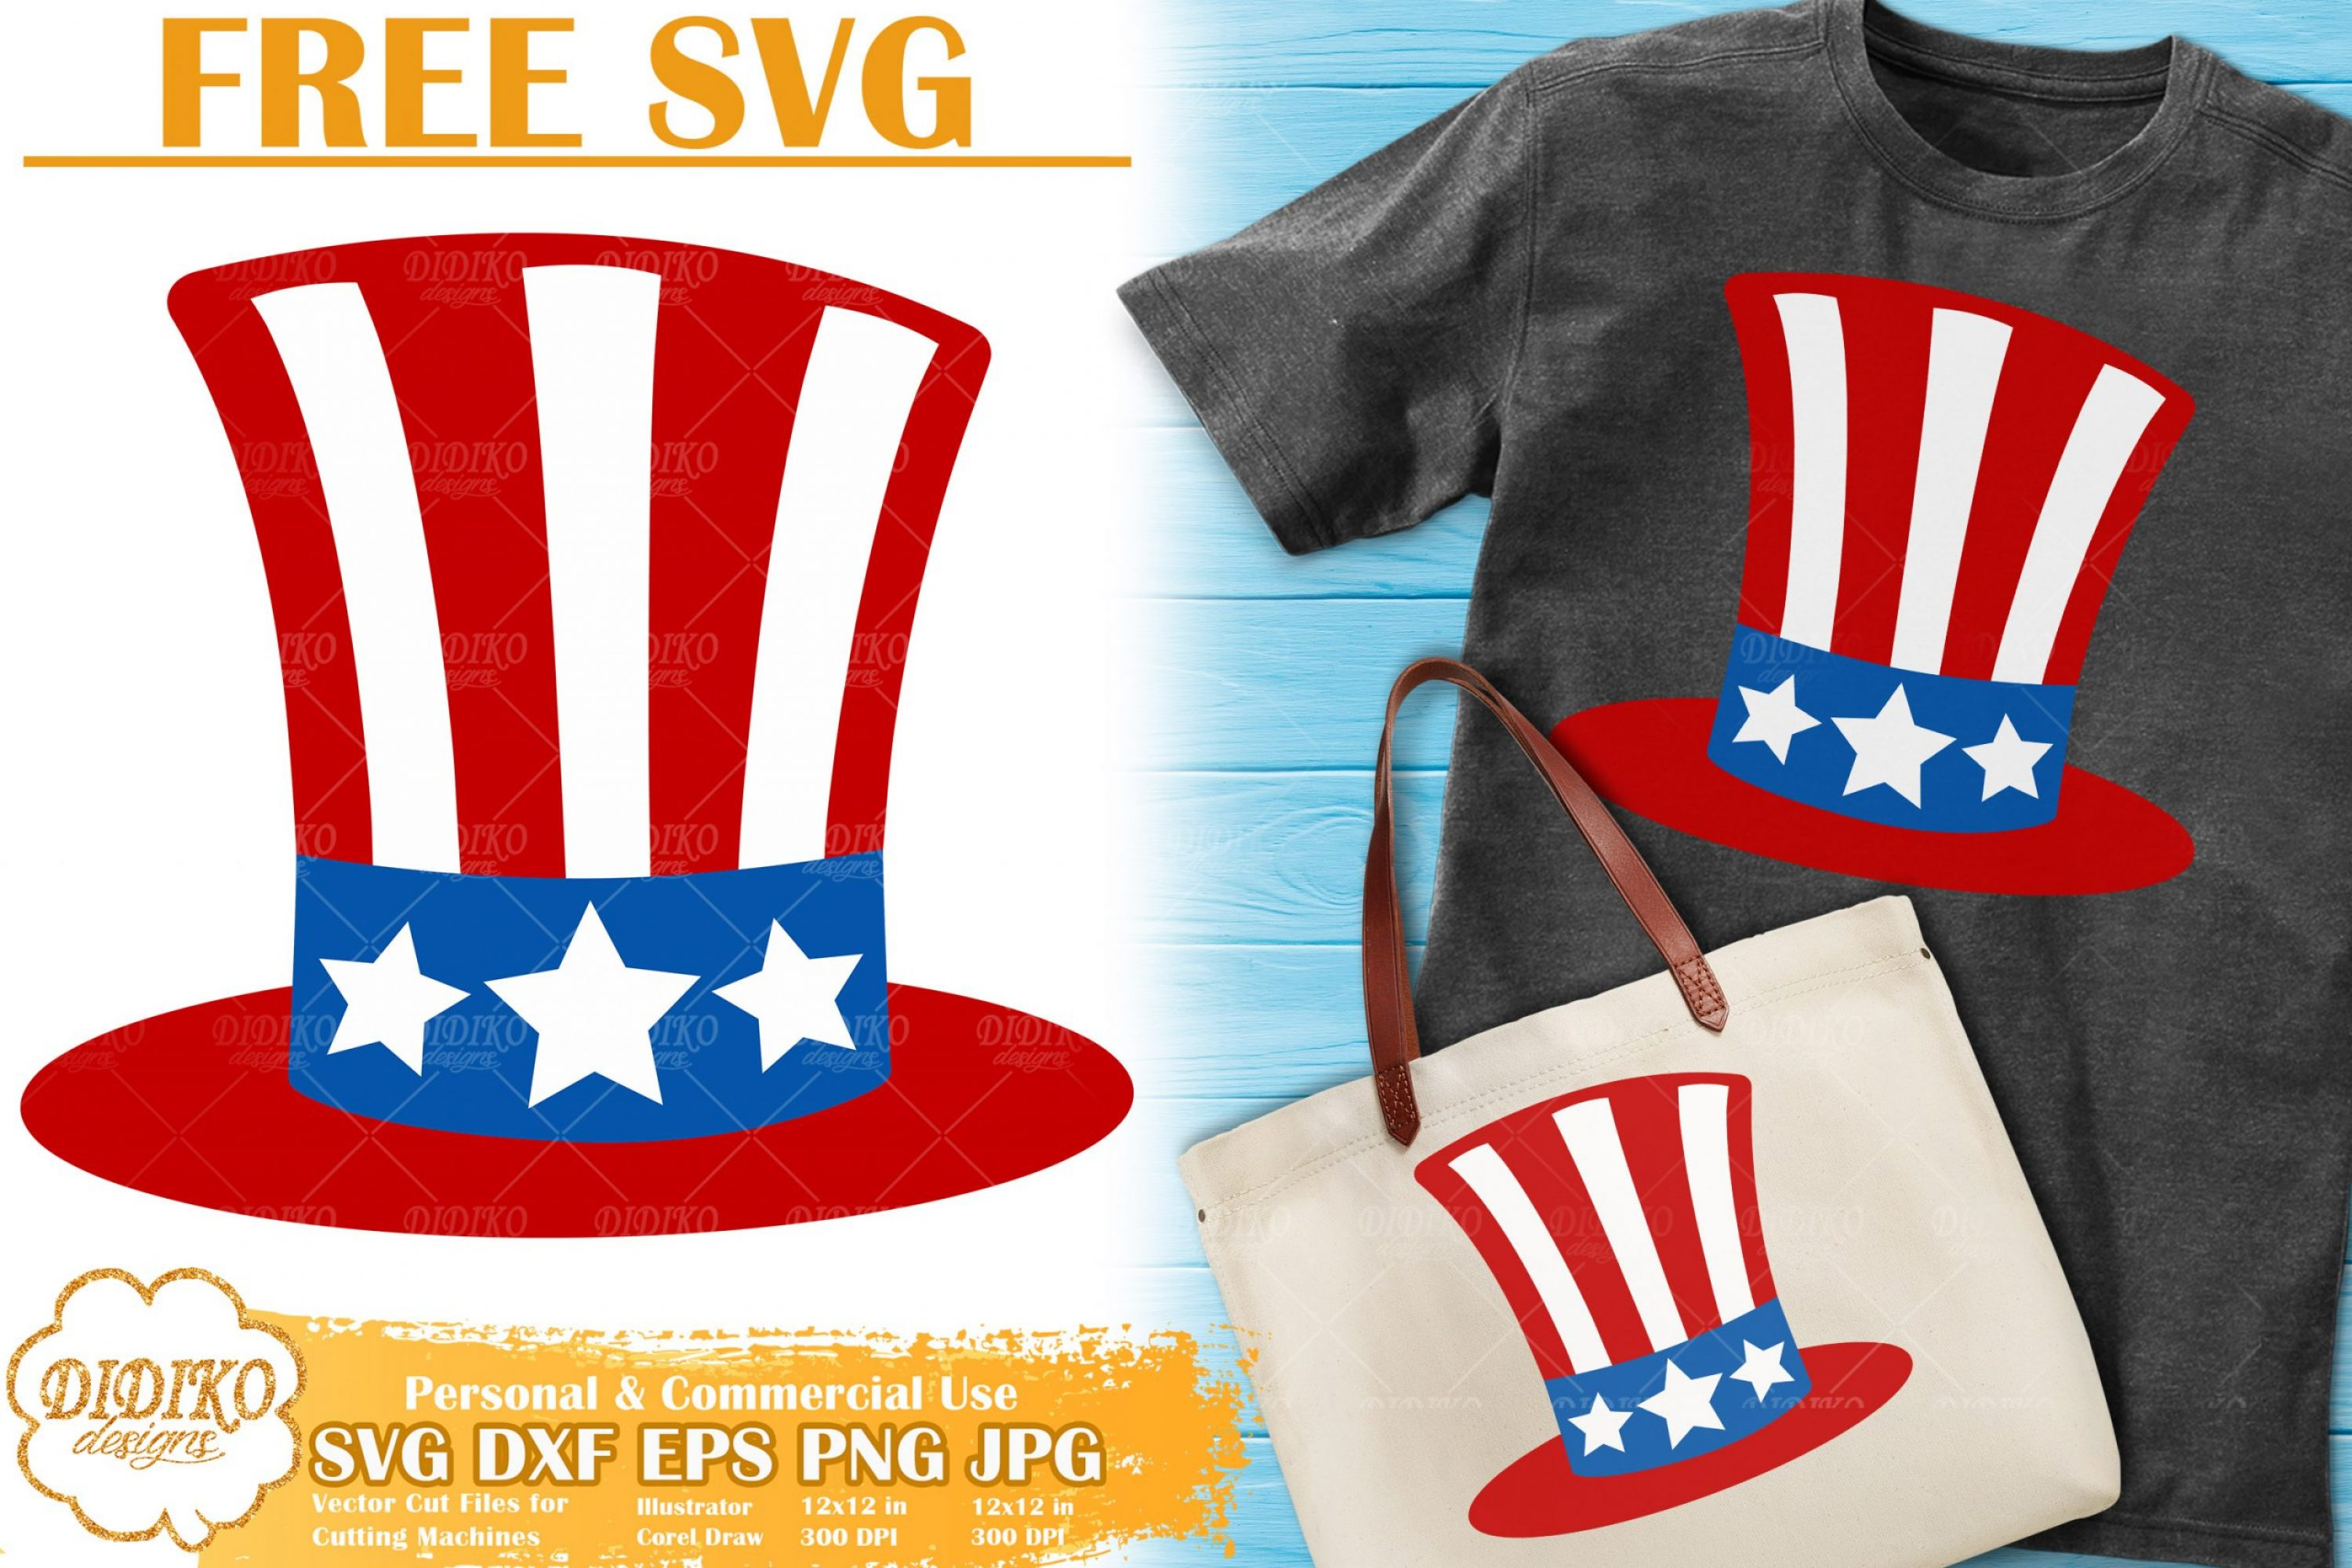 USA Hat Free SVG | 4th of July Free SVG | America Svg